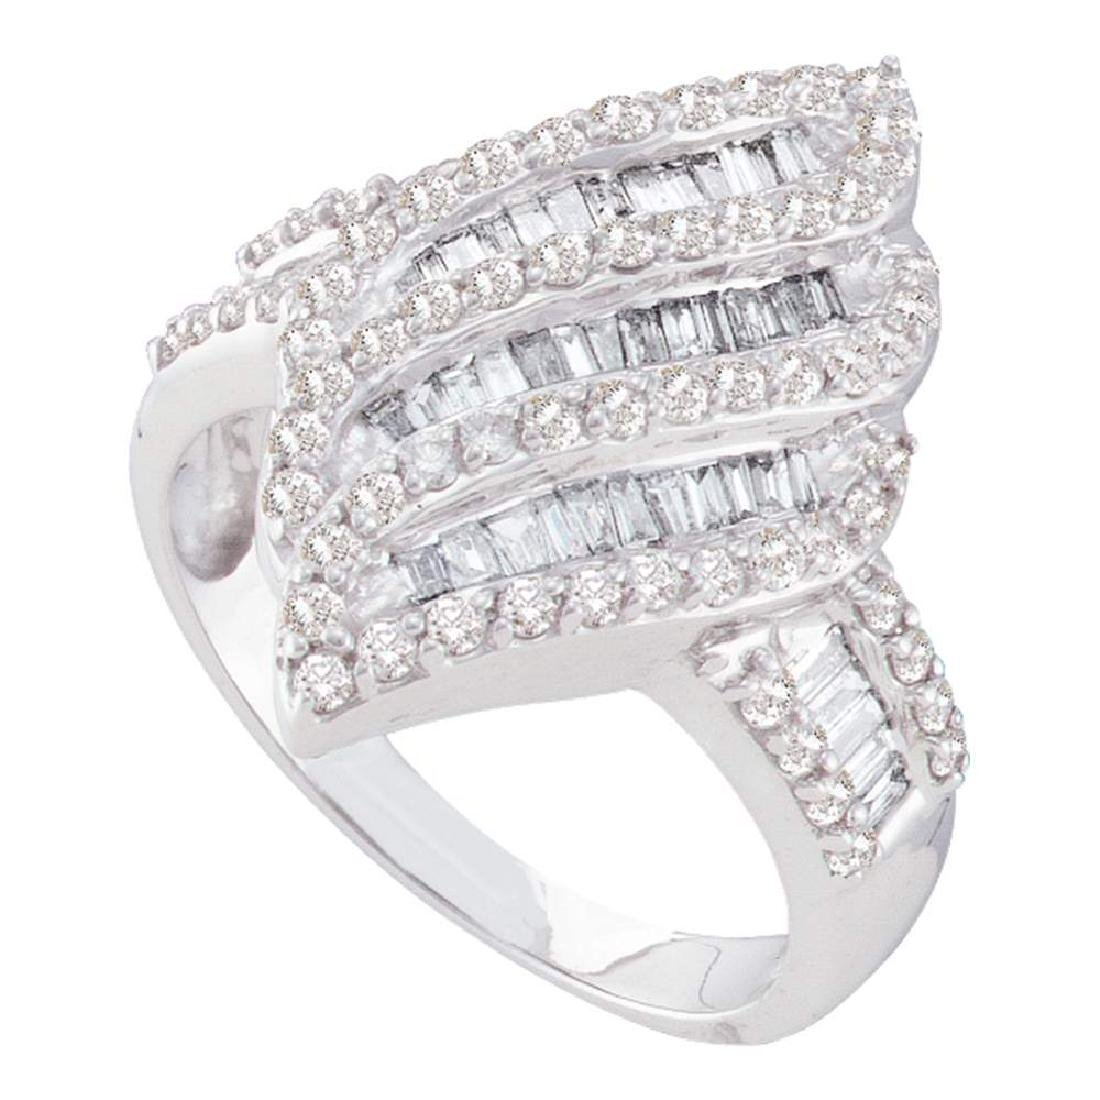 1 CTW Diamond Oval Cluster Ring 14KT White Gold -